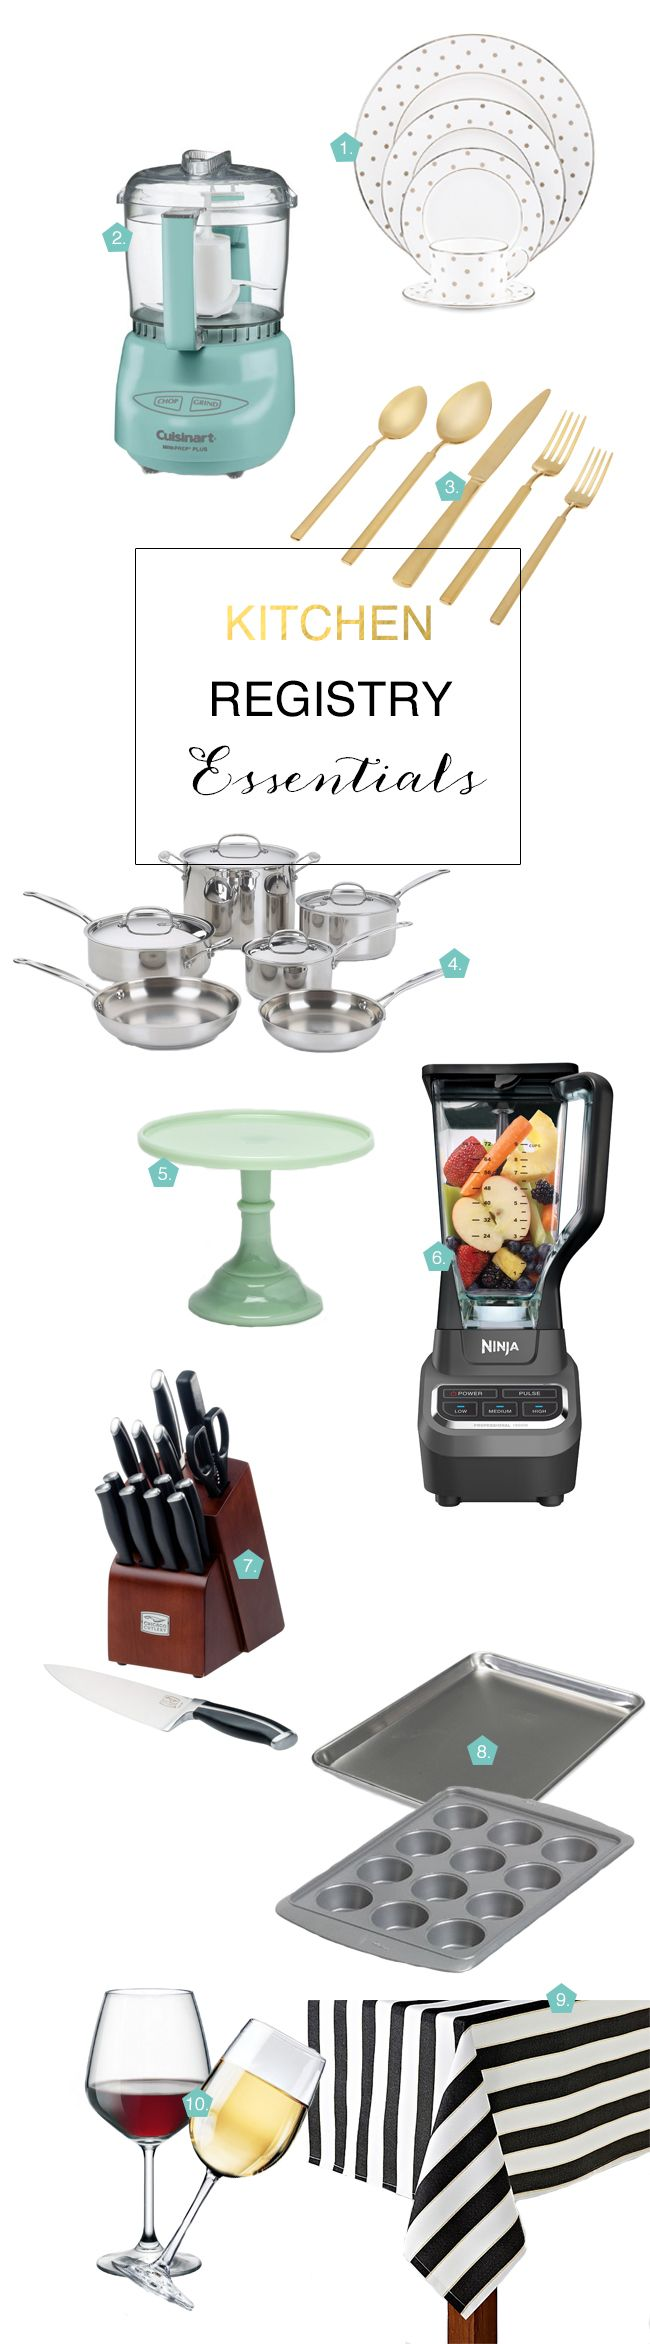 Must Have Kitchen Items To Register For Wedding Registry